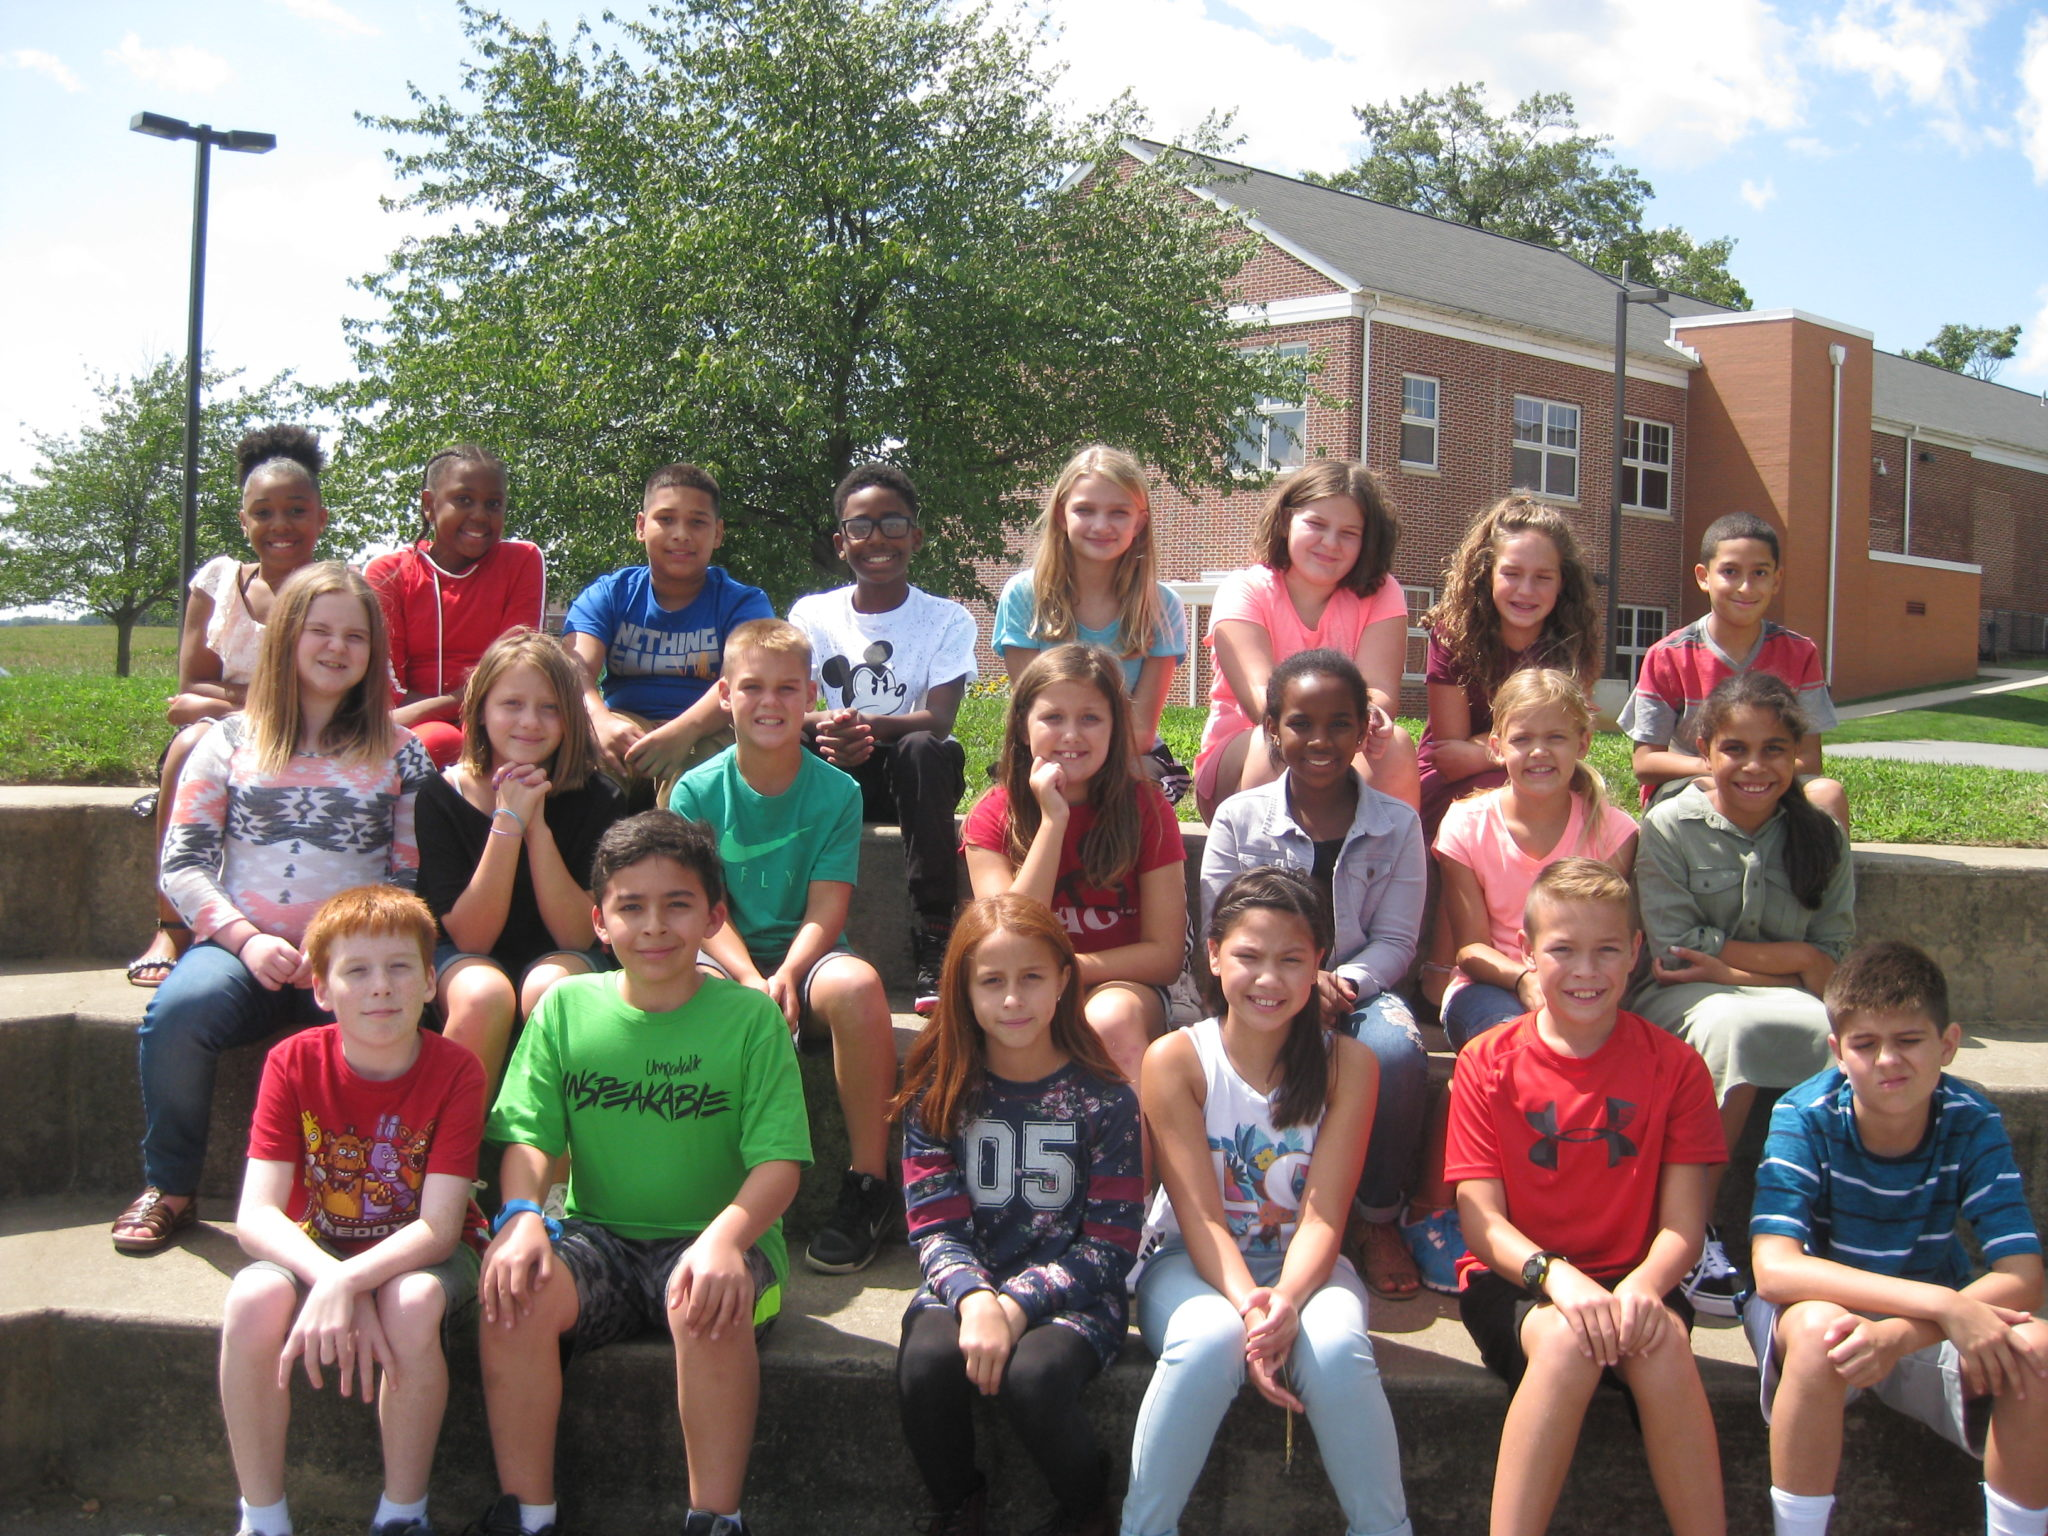 Class picture - 1st day of school